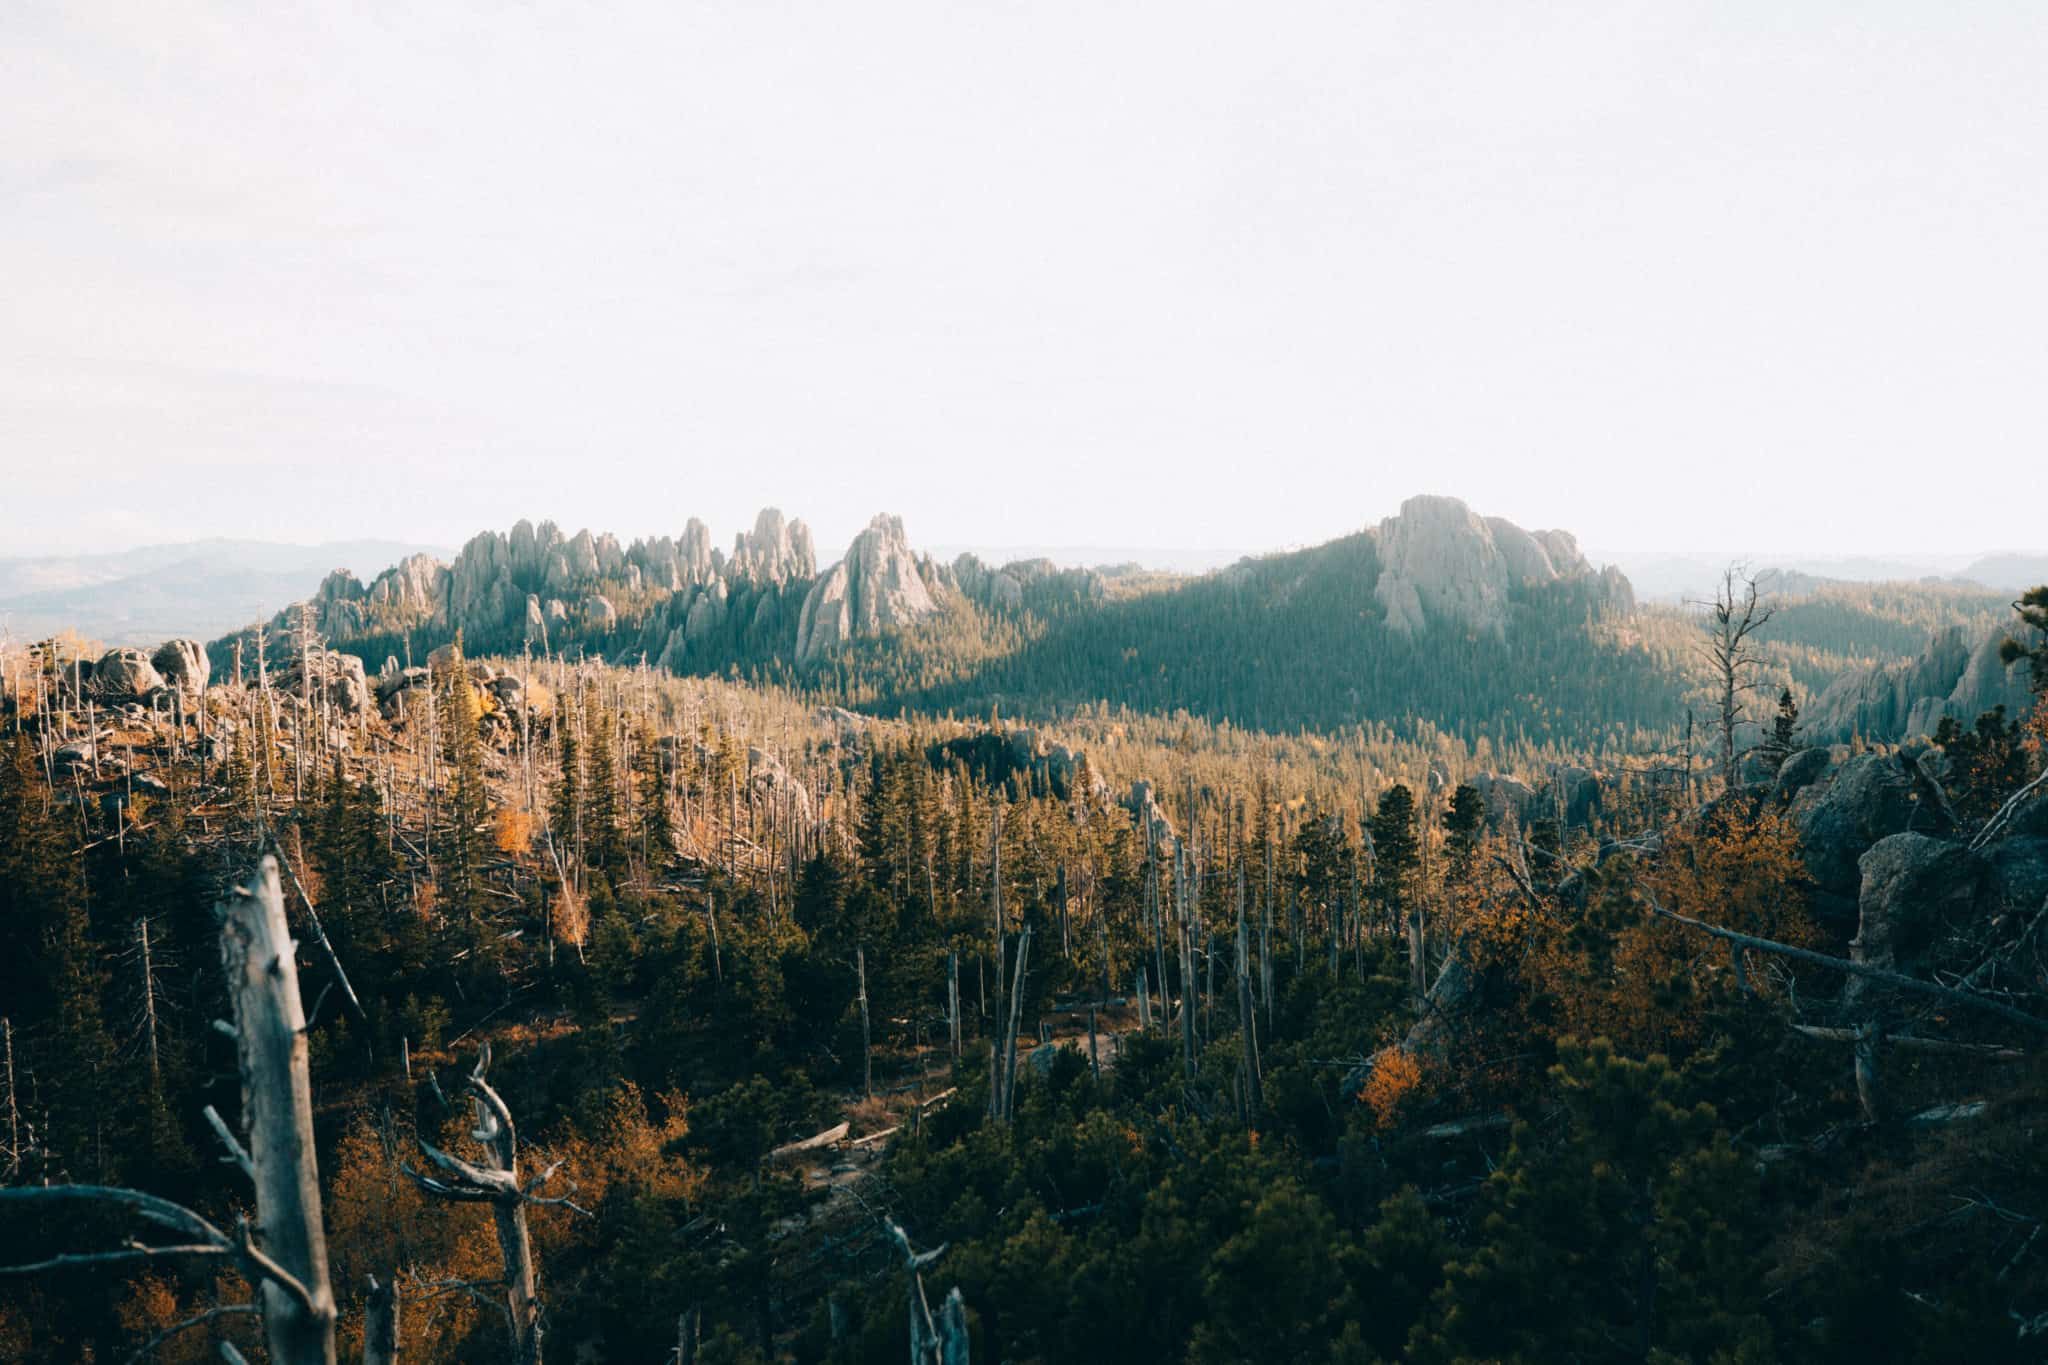 View from the Black Elk Peak Trail, Cathedral Spires